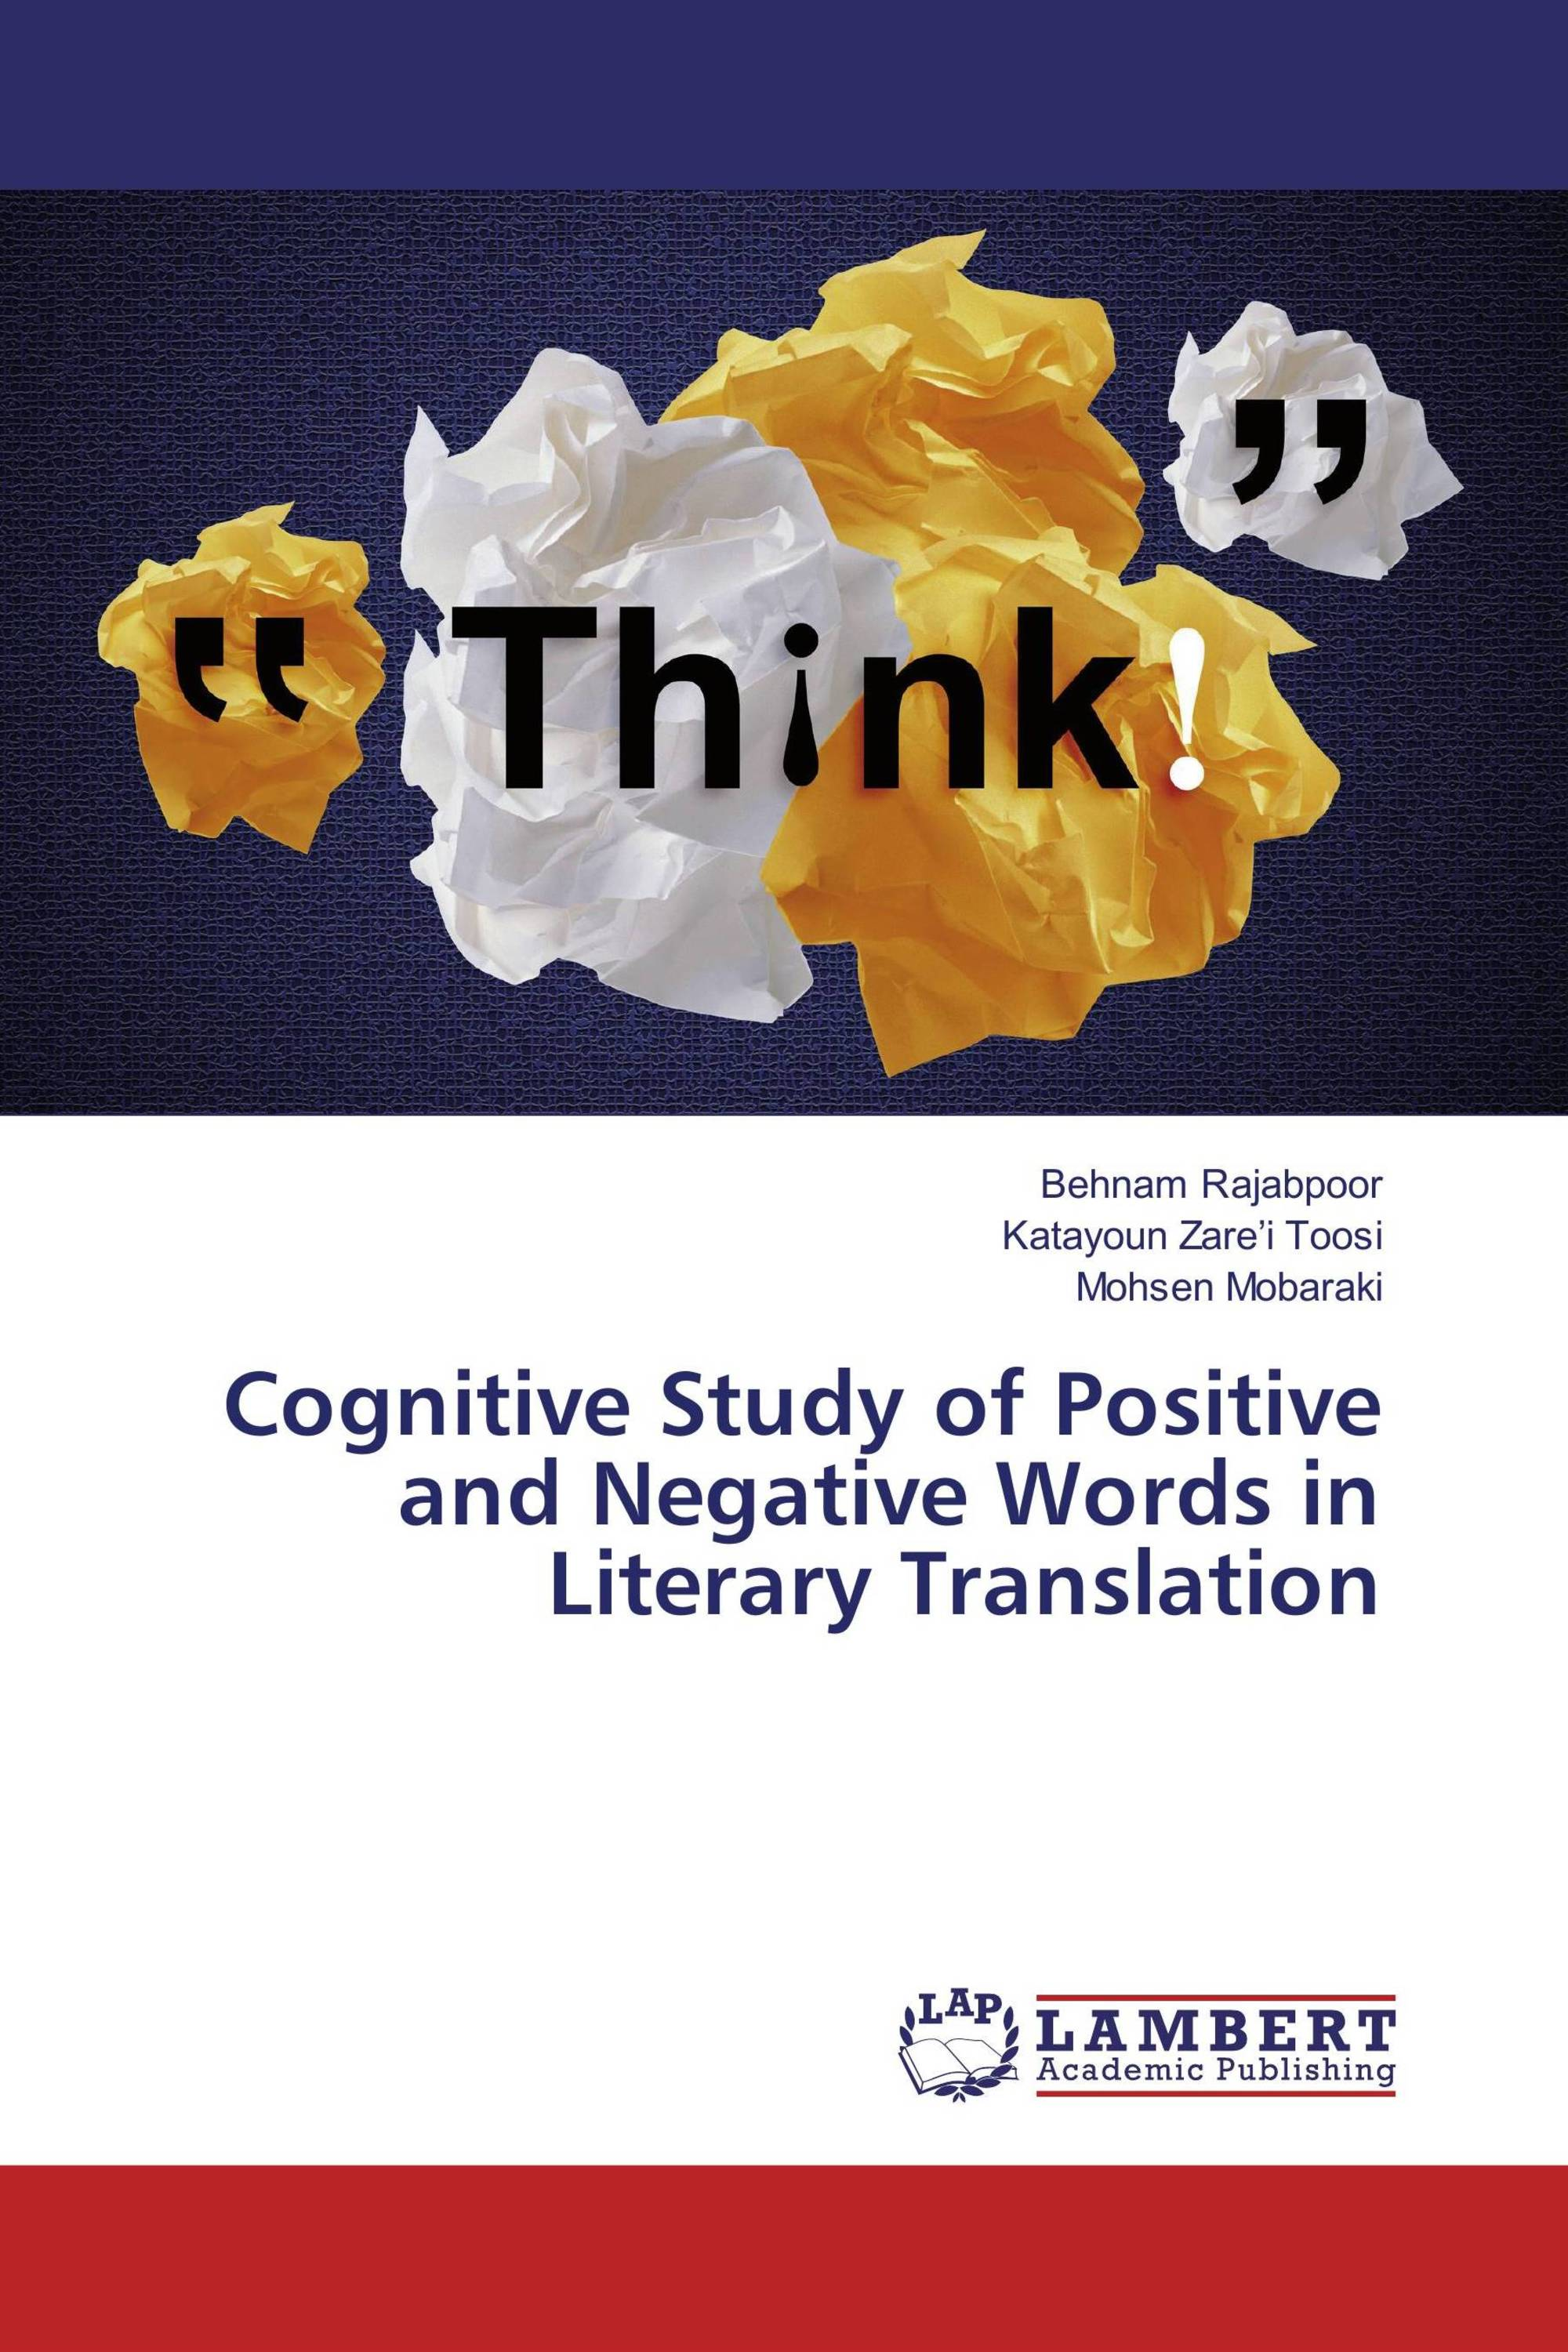 Cognitive Study of Positive and Negative Words in Literary Translation